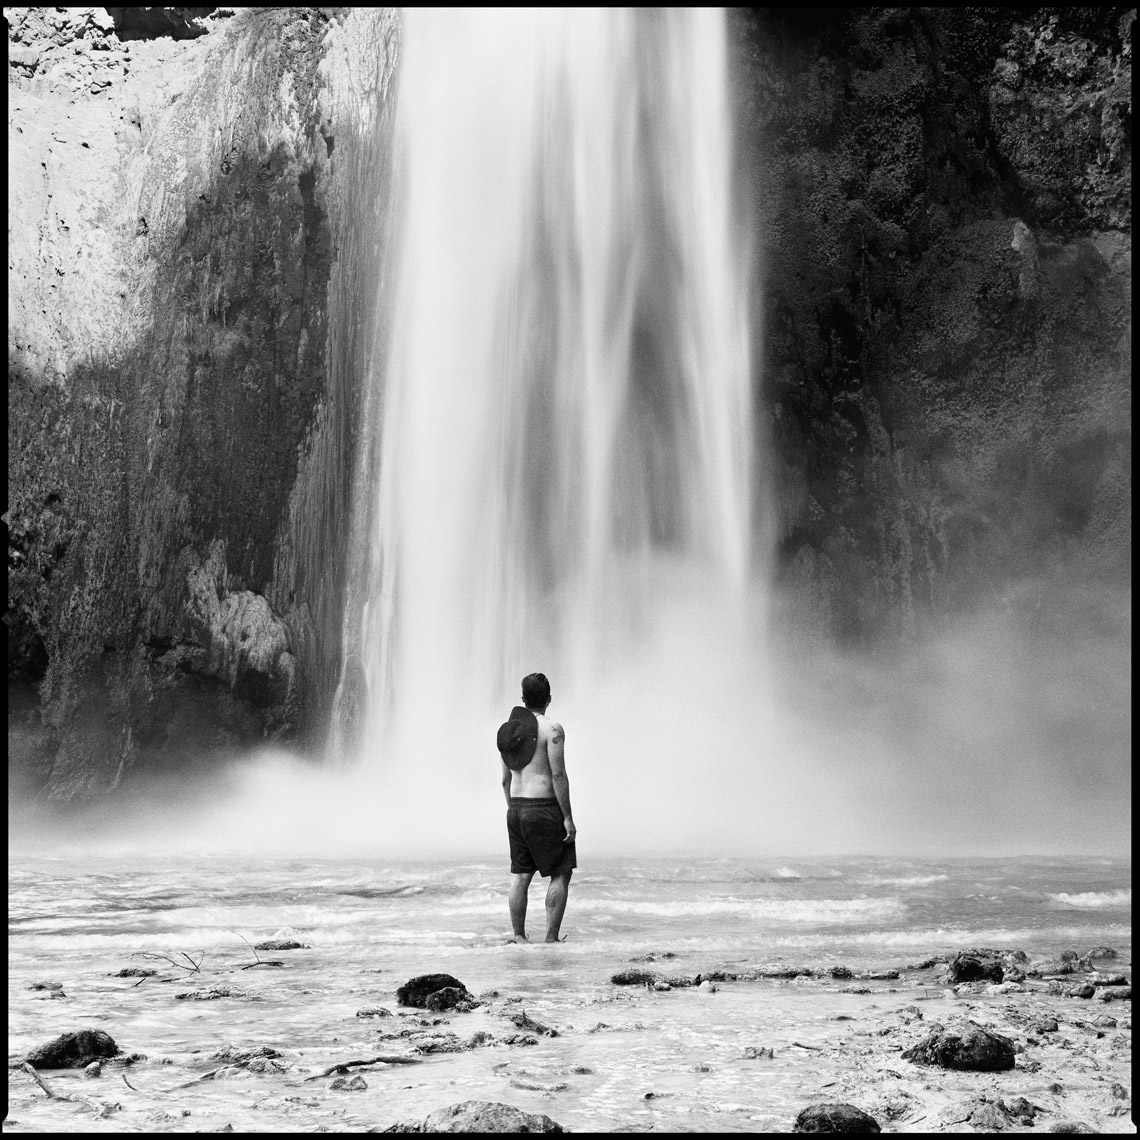 Mooney Falls - Supai, Arizona - Stephen Denton Photography - Phoenix AZ Commercial Photographer